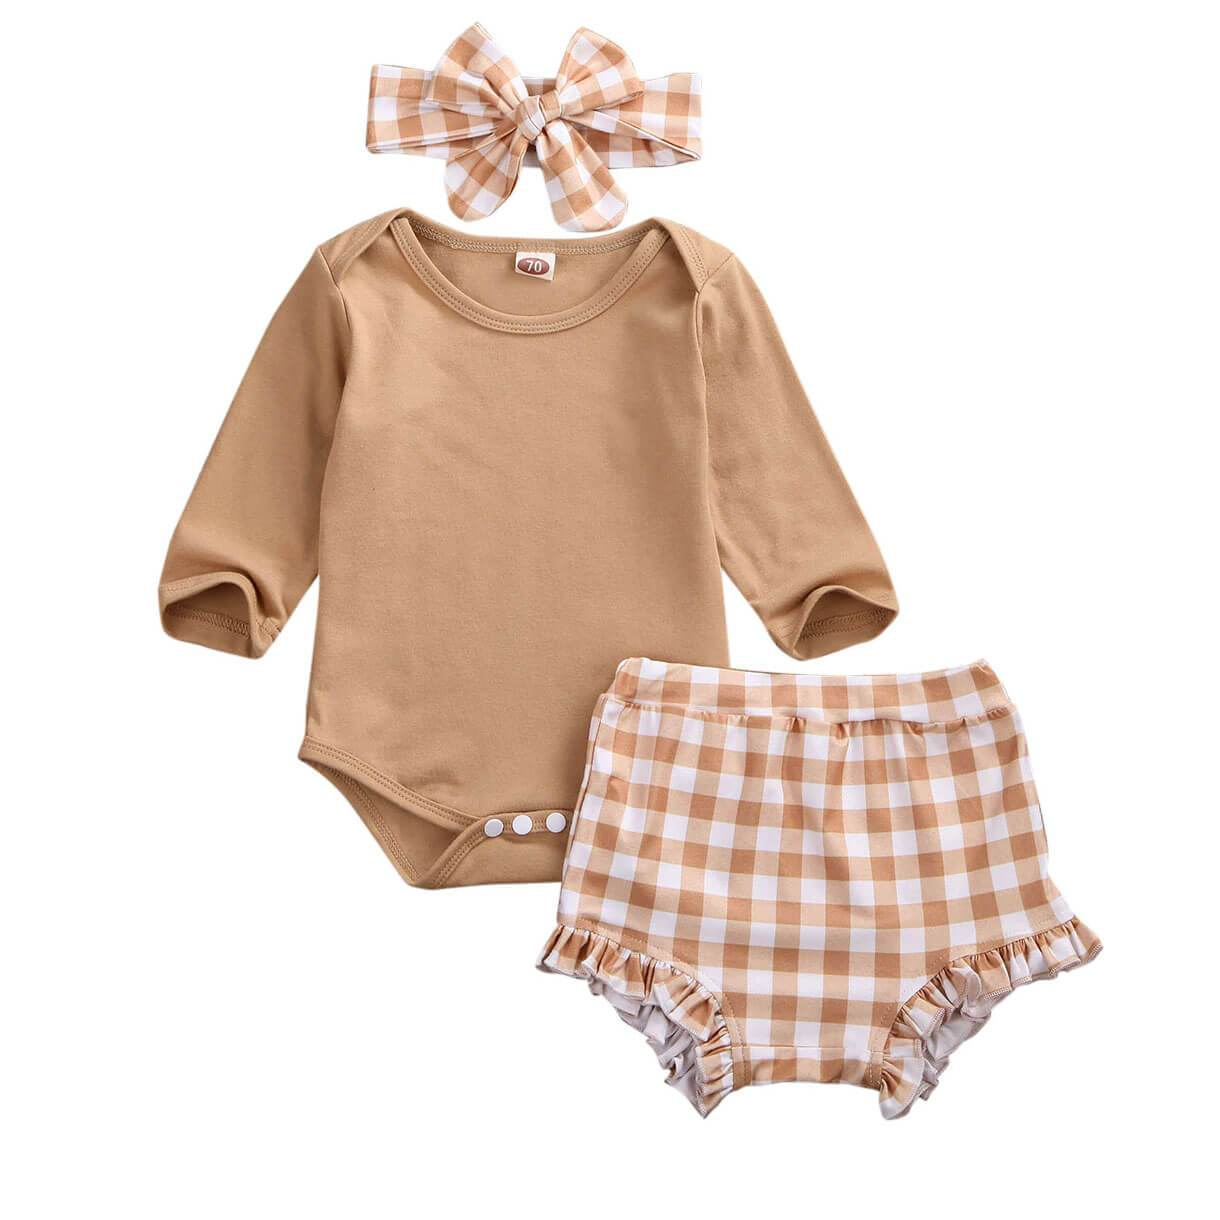 Plaid Tan Set - The Trendy Toddlers